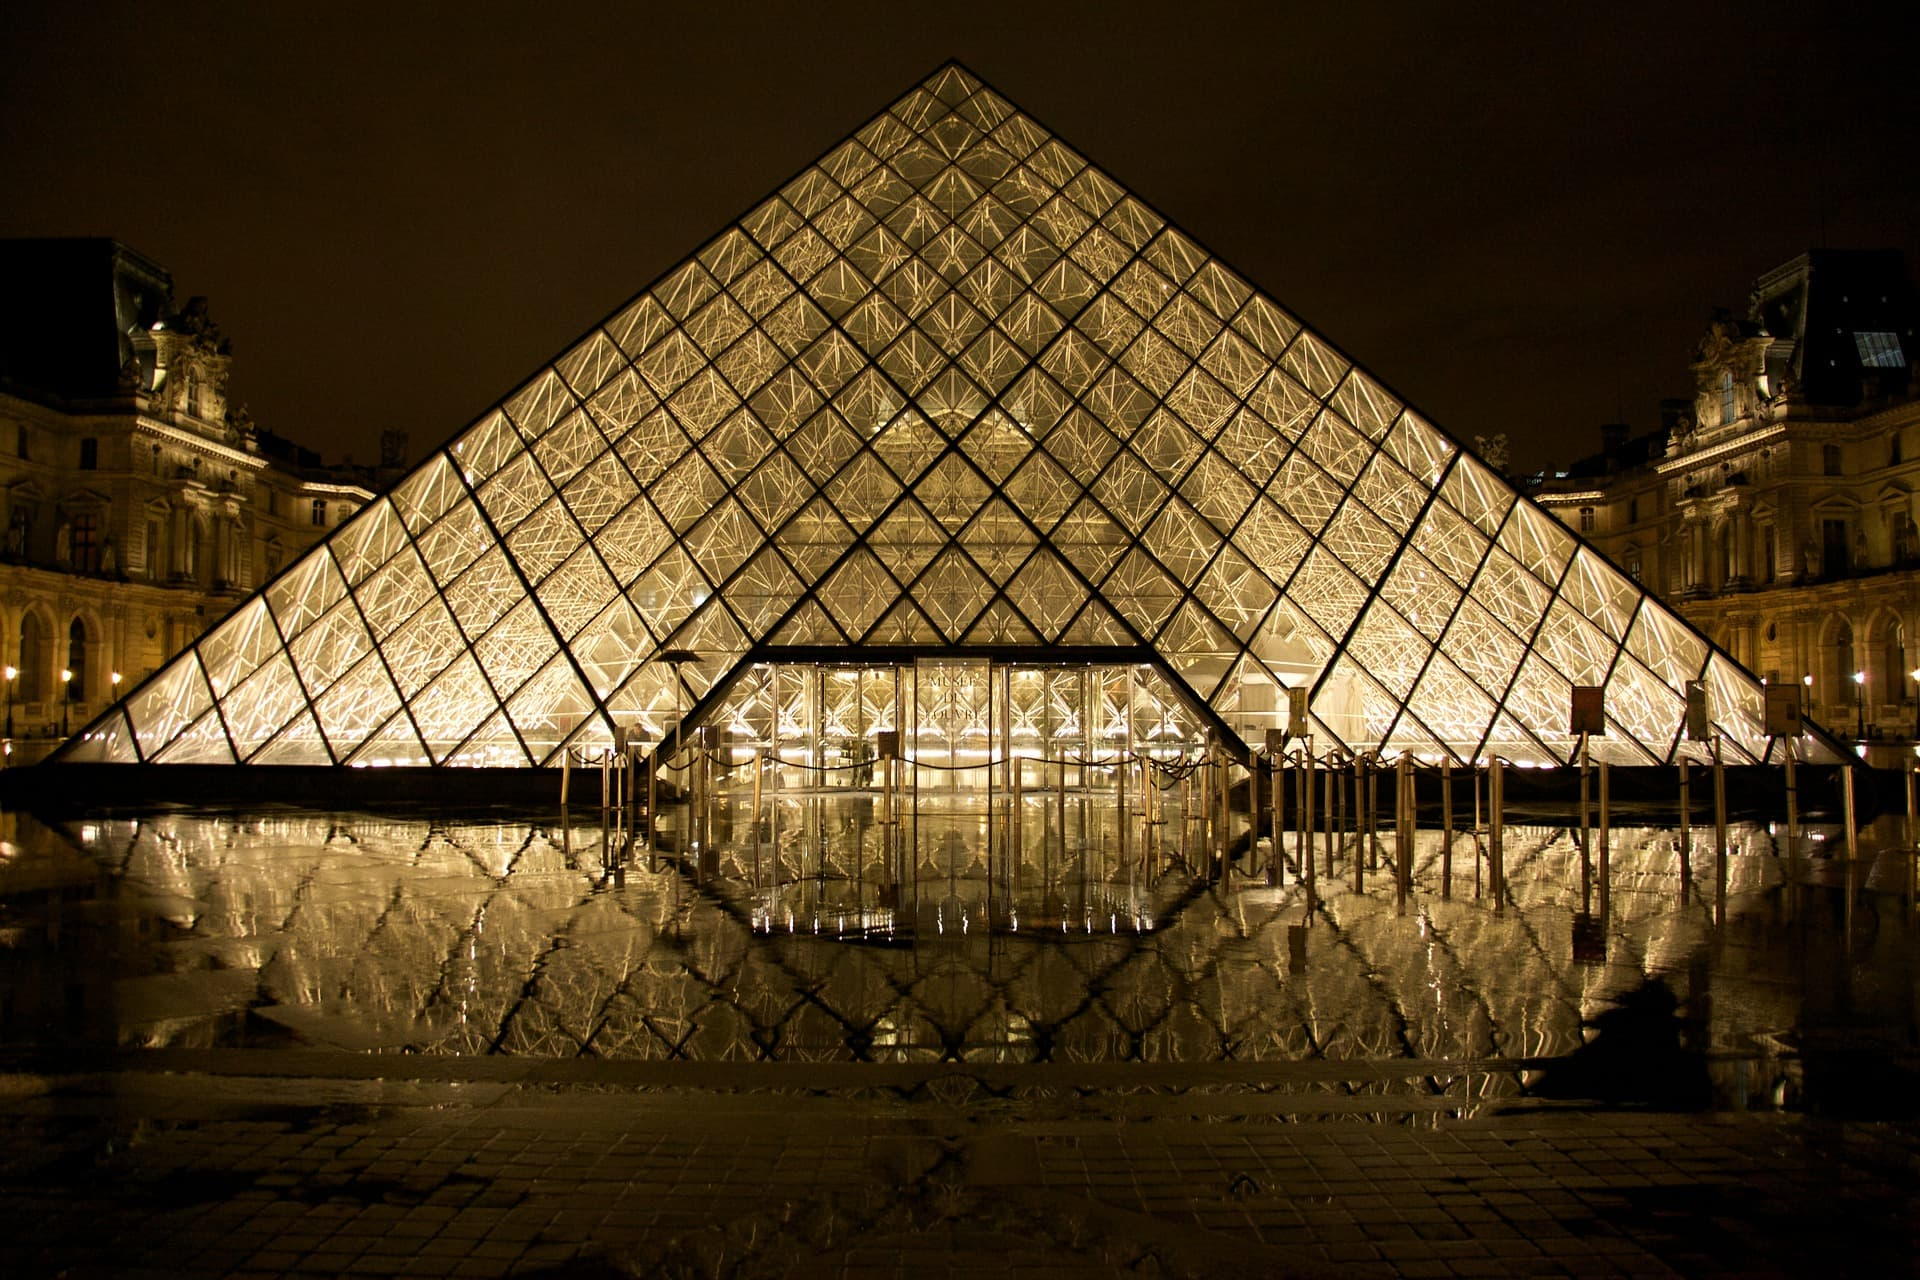 4 – The Louvre Pyramid, Paris